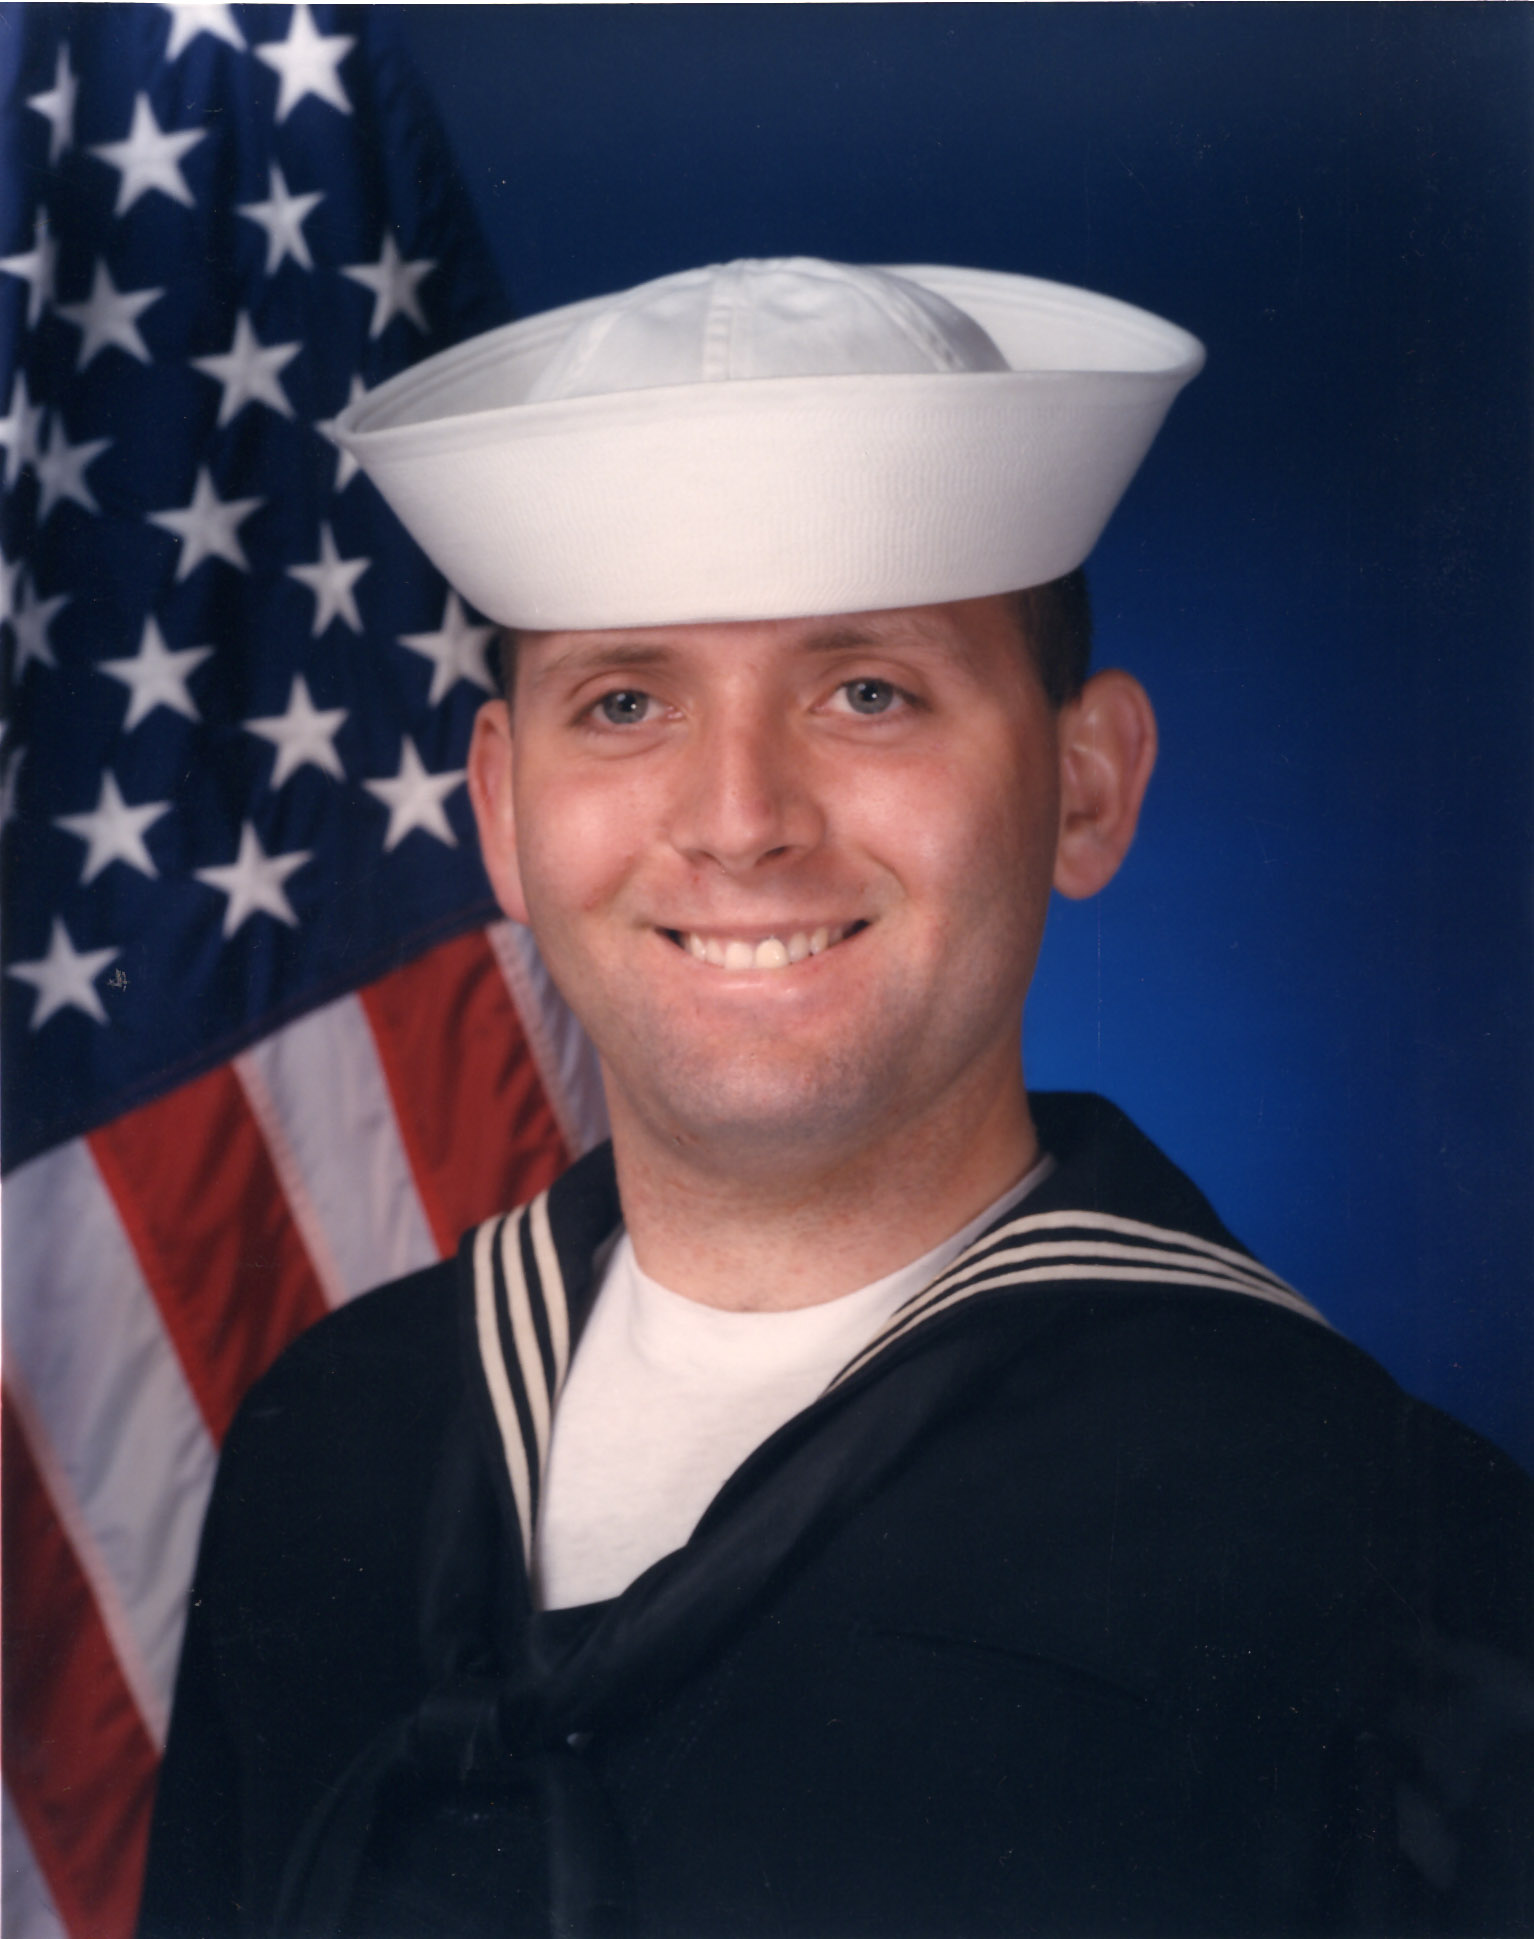 Navy Petty Officer 3rd Class Charles Villa Specialty: Operations Specialist Dates of Service: 1989-1991. Decorations: Armed Forces Expeditionary Medal - chuckvilla